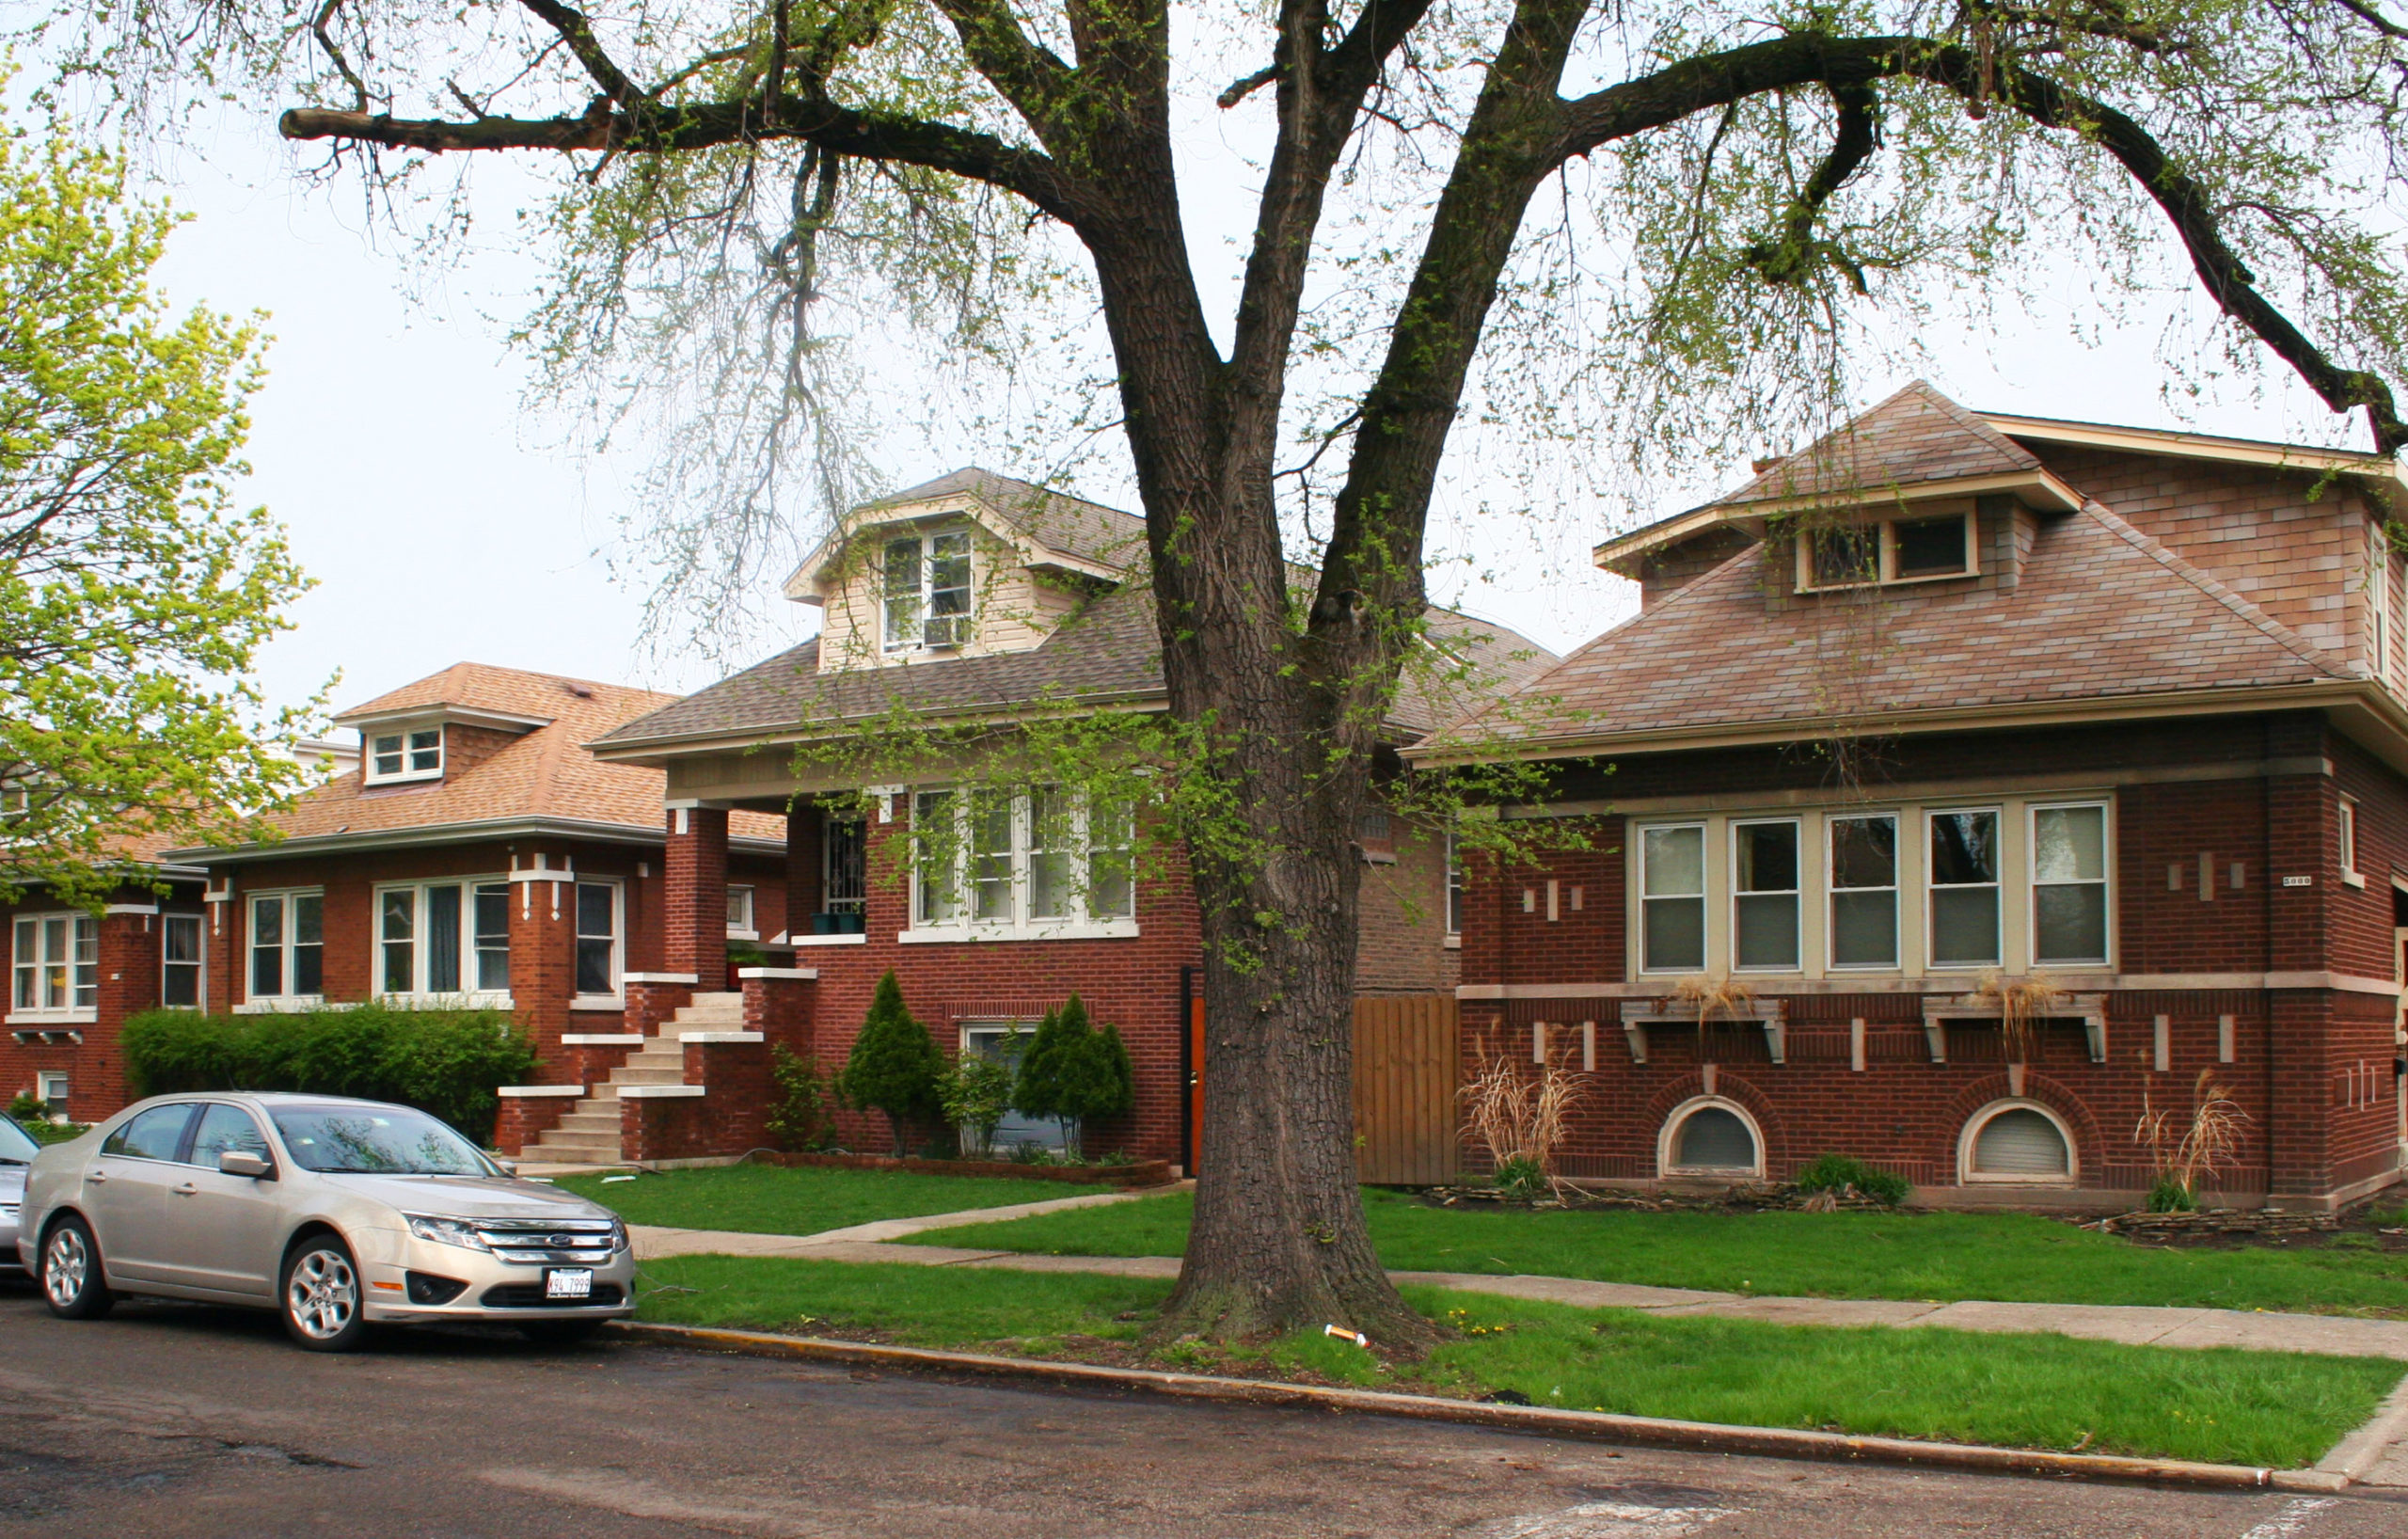 Chicago residential architecture, three bungalow houses